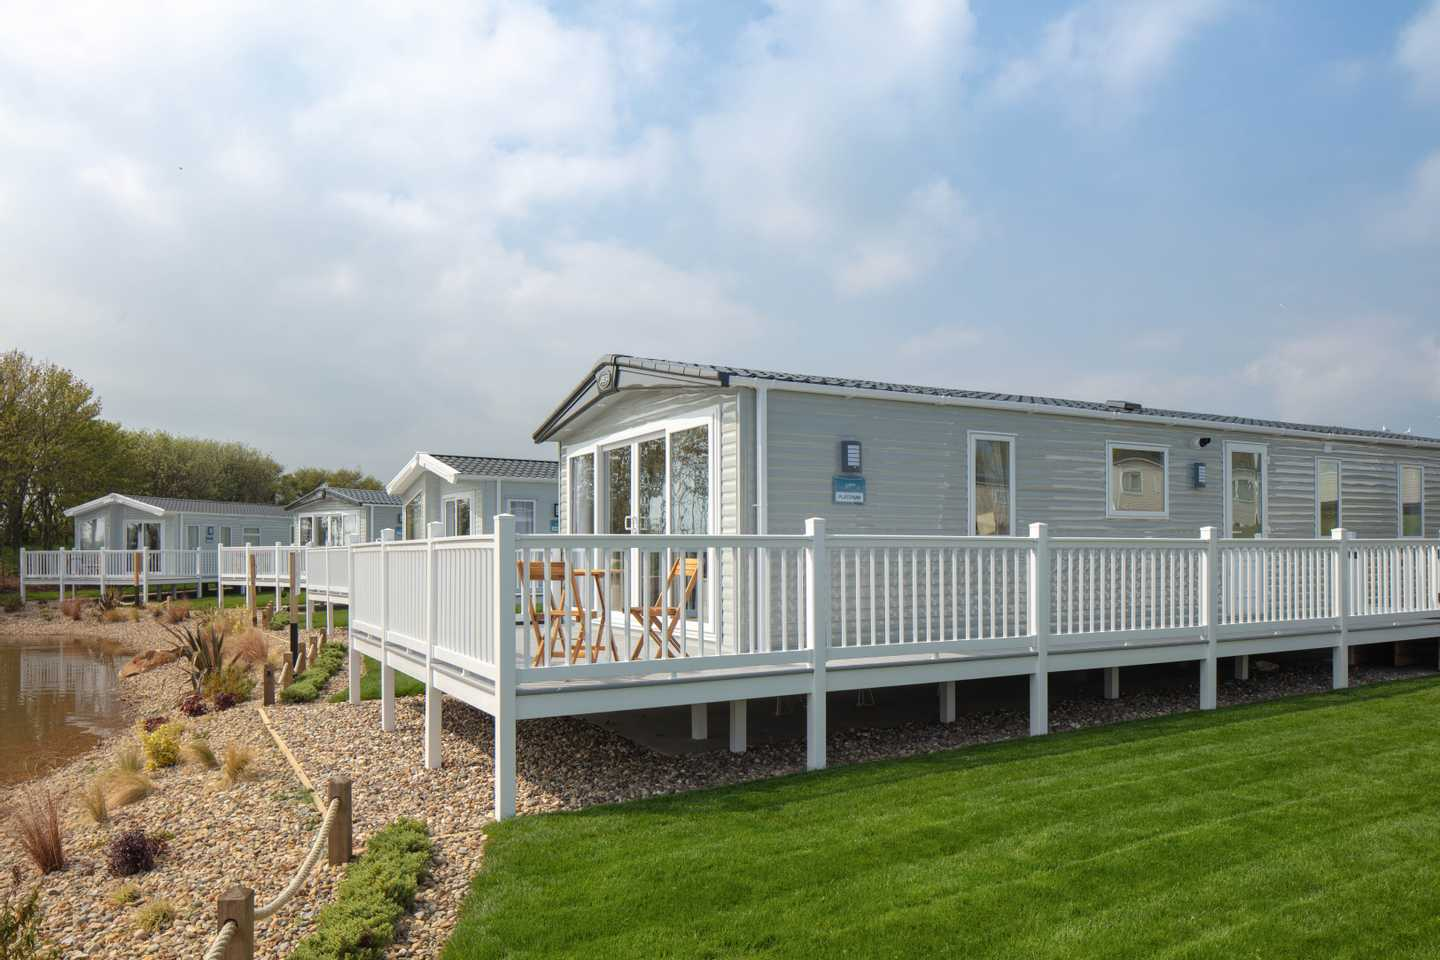 View of several New Platinum with decking caravans at Wold Vale